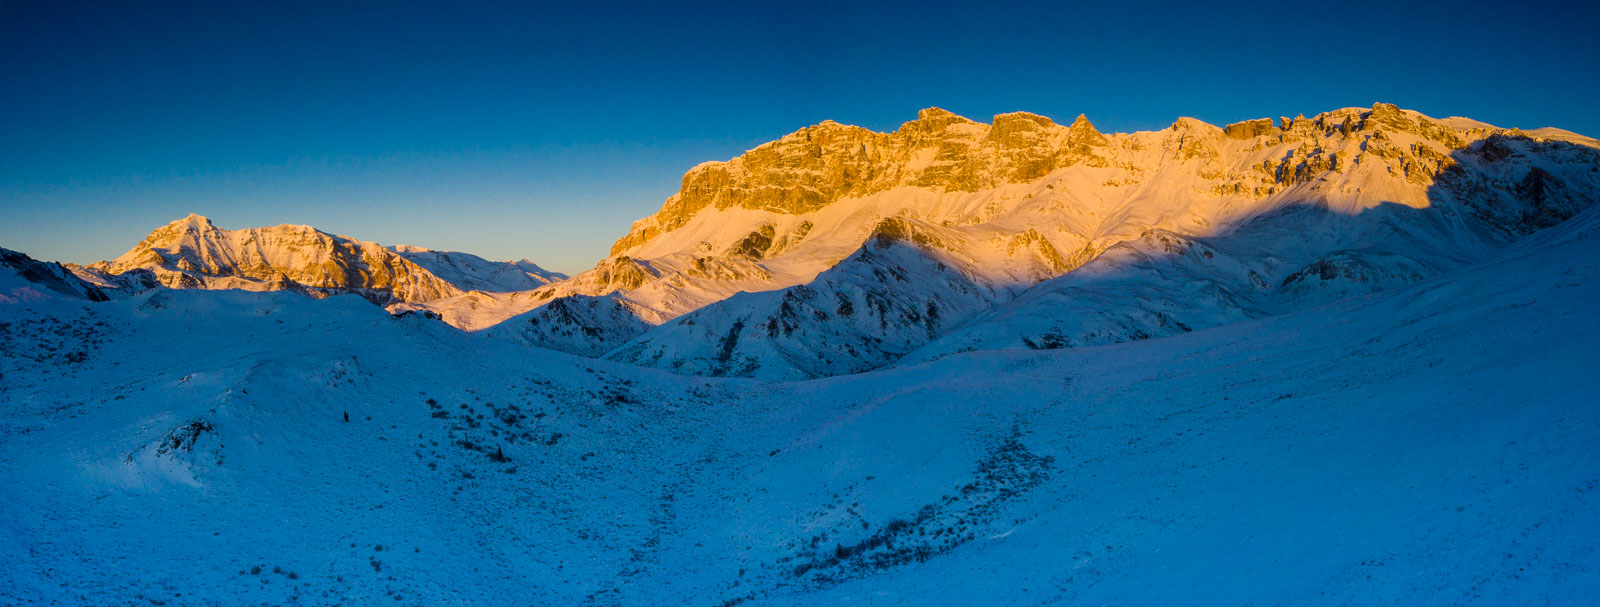 Evening light and shadow create lines upon the high alpine landscape in the Brooks Range of Alaska.